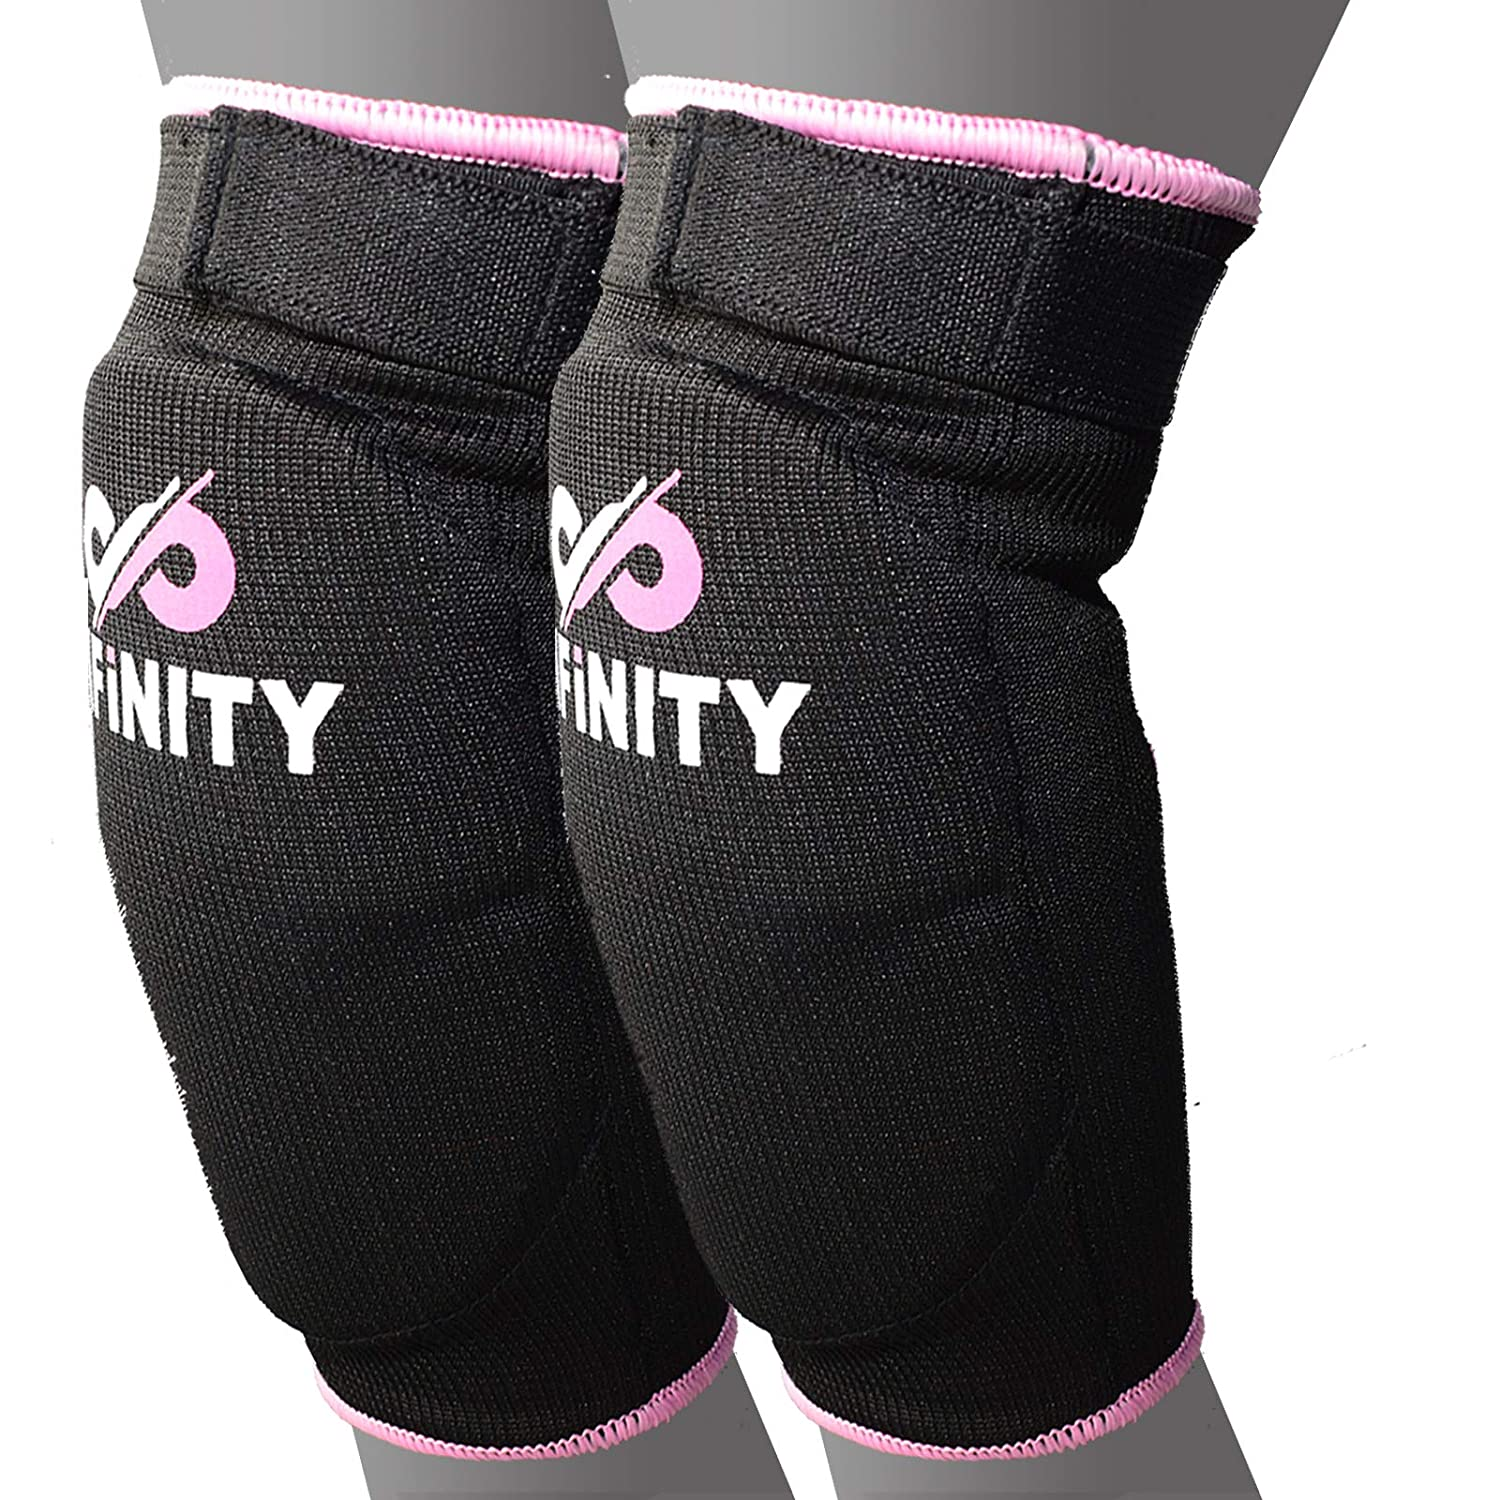 Infinity Sports USA Elbow Pads Protector Brace Support Guards Arm MMA Guard Gym Padded Martial Arts Basketball Weaving Workwear Training Garden Elbowlers